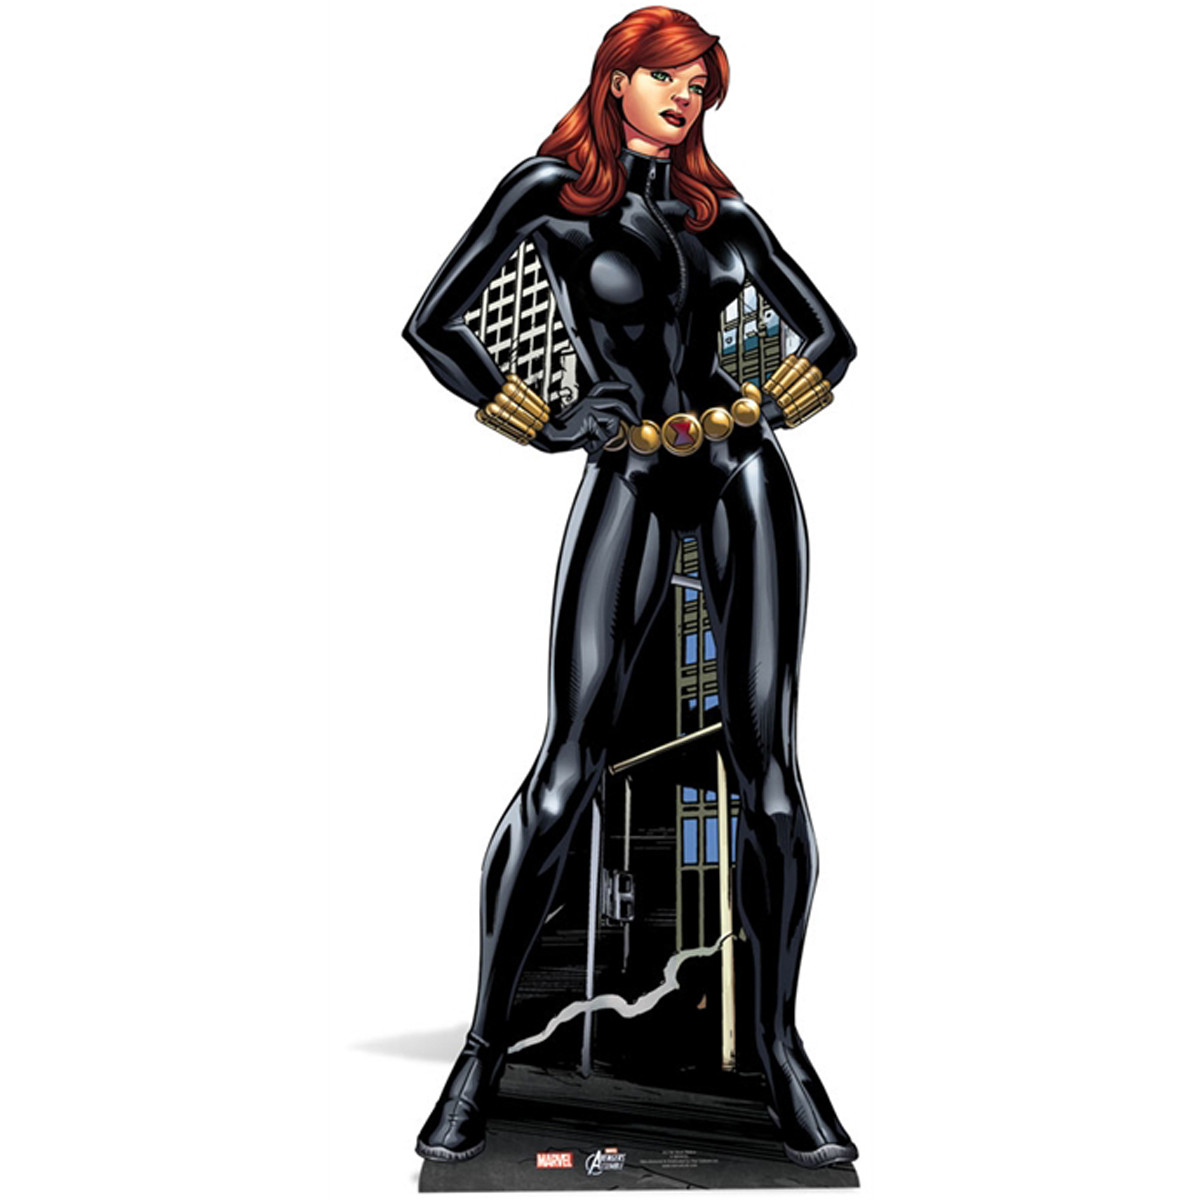 Figurine en carton Black Widow Marvel